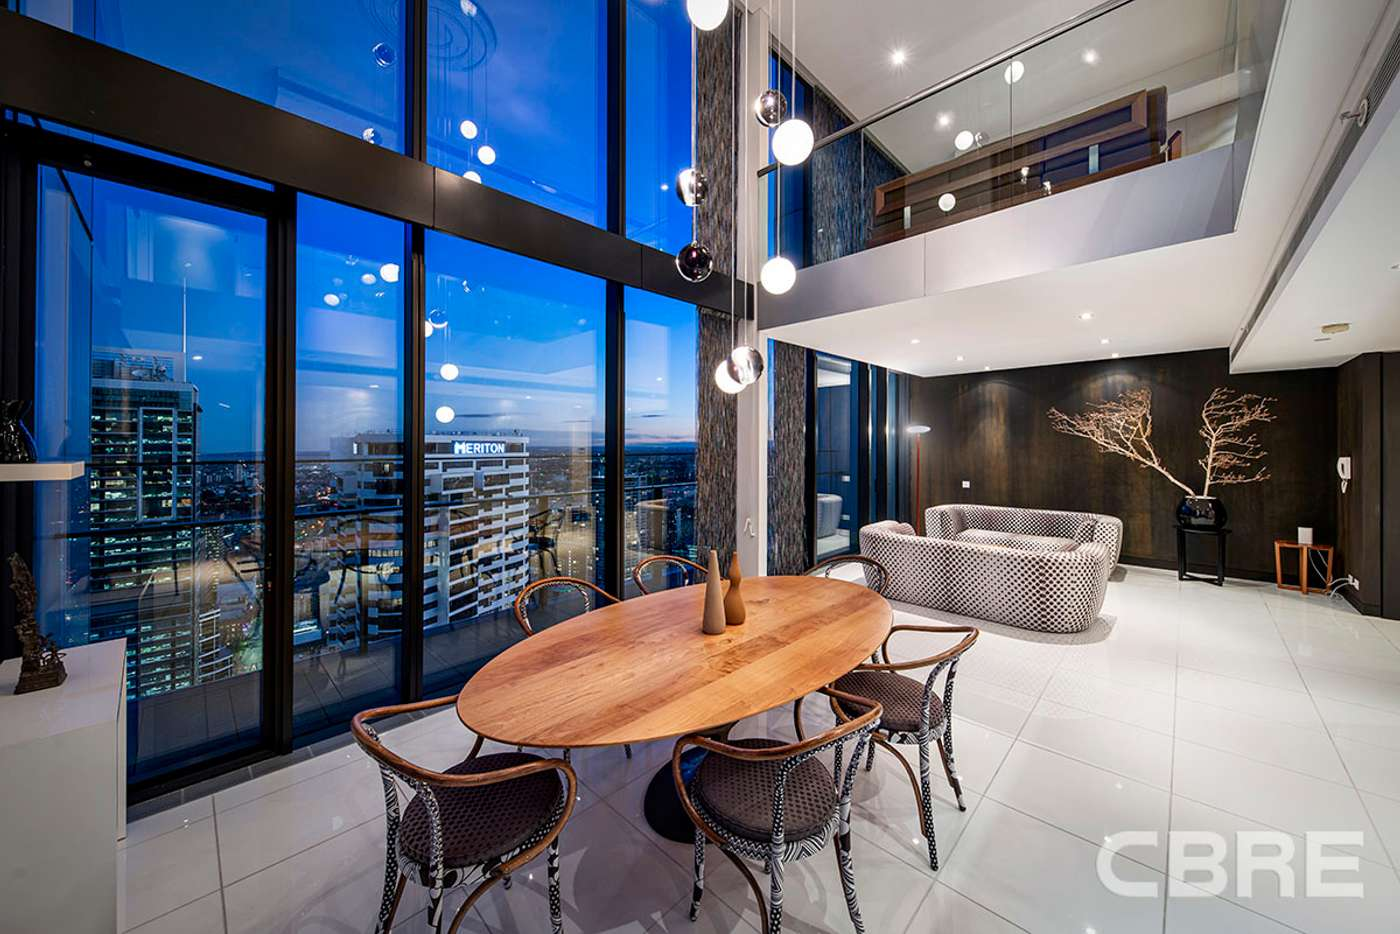 Main view of Homely apartment listing, 5406/101 Bathurst, Sydney NSW 2000